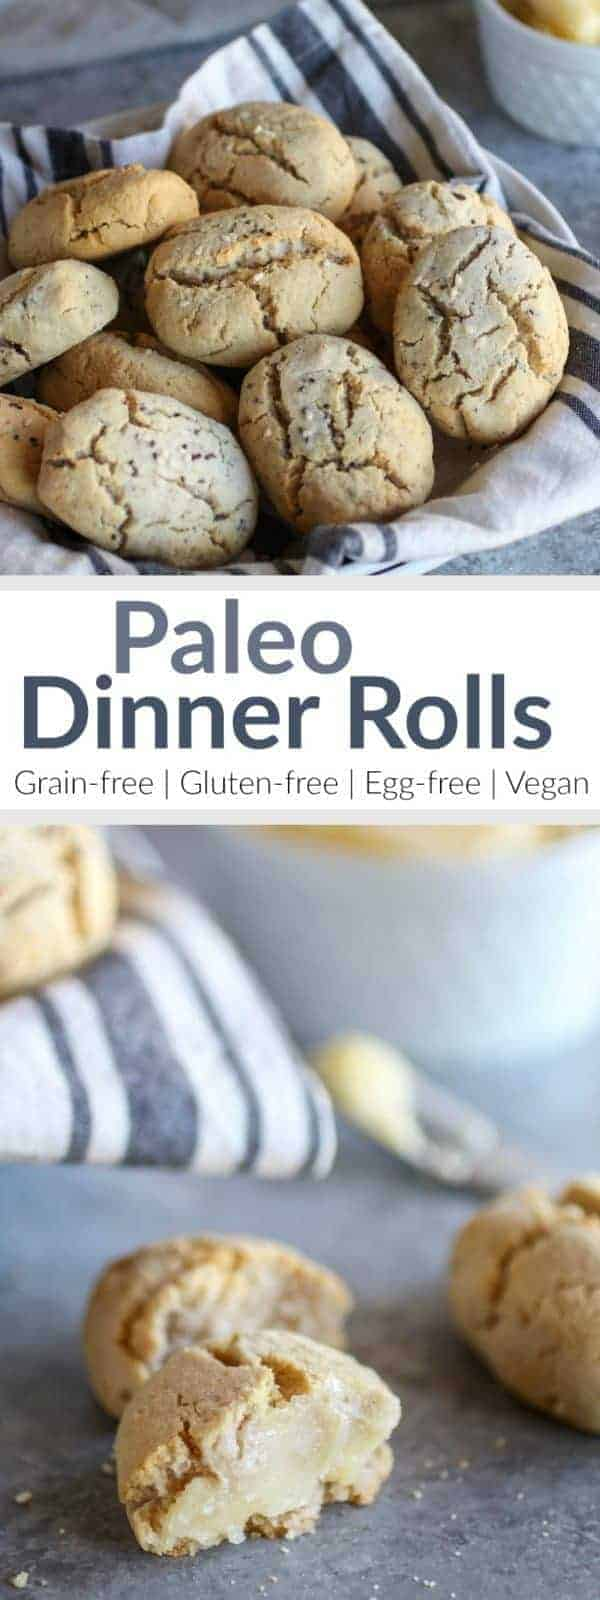 An allergy-friendly, paleo dinner roll recipe for ALL to enjoy   These Paleo Dinner Rolls are grain-free, gluten-free, egg-free, vegan-option and nut-free option   therealfoodrds.com